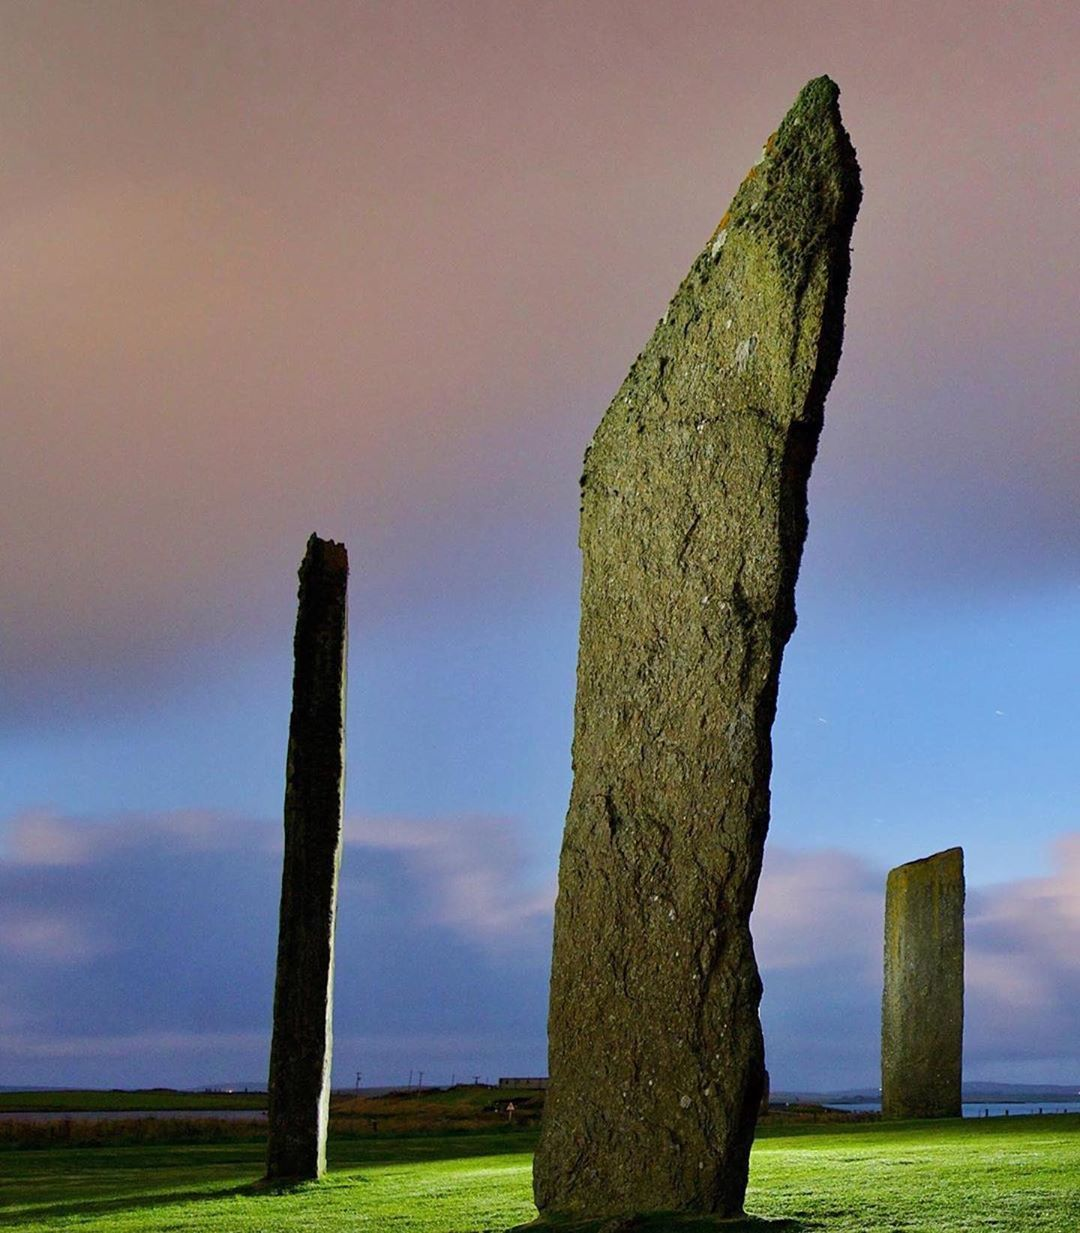 "Stones of Stenness, Scotland Historic Scotland on Instagram: ""We wonder if the prehistoric people of the Orkney islands would have marvelled at such beautiful skies at the Stones of Stenness over 5,000…"" #orkneyislands Stones of Stenness, Scotland Historic Scotland on Instagram: ""We wonder if the prehistoric people of the Orkney islands would have marvelled at such beautiful skies at the Stones of Stenness over 5,000…"" #orkneyislands Stones of Stenness, Scotland Historic Scotland on #orkneyislands"